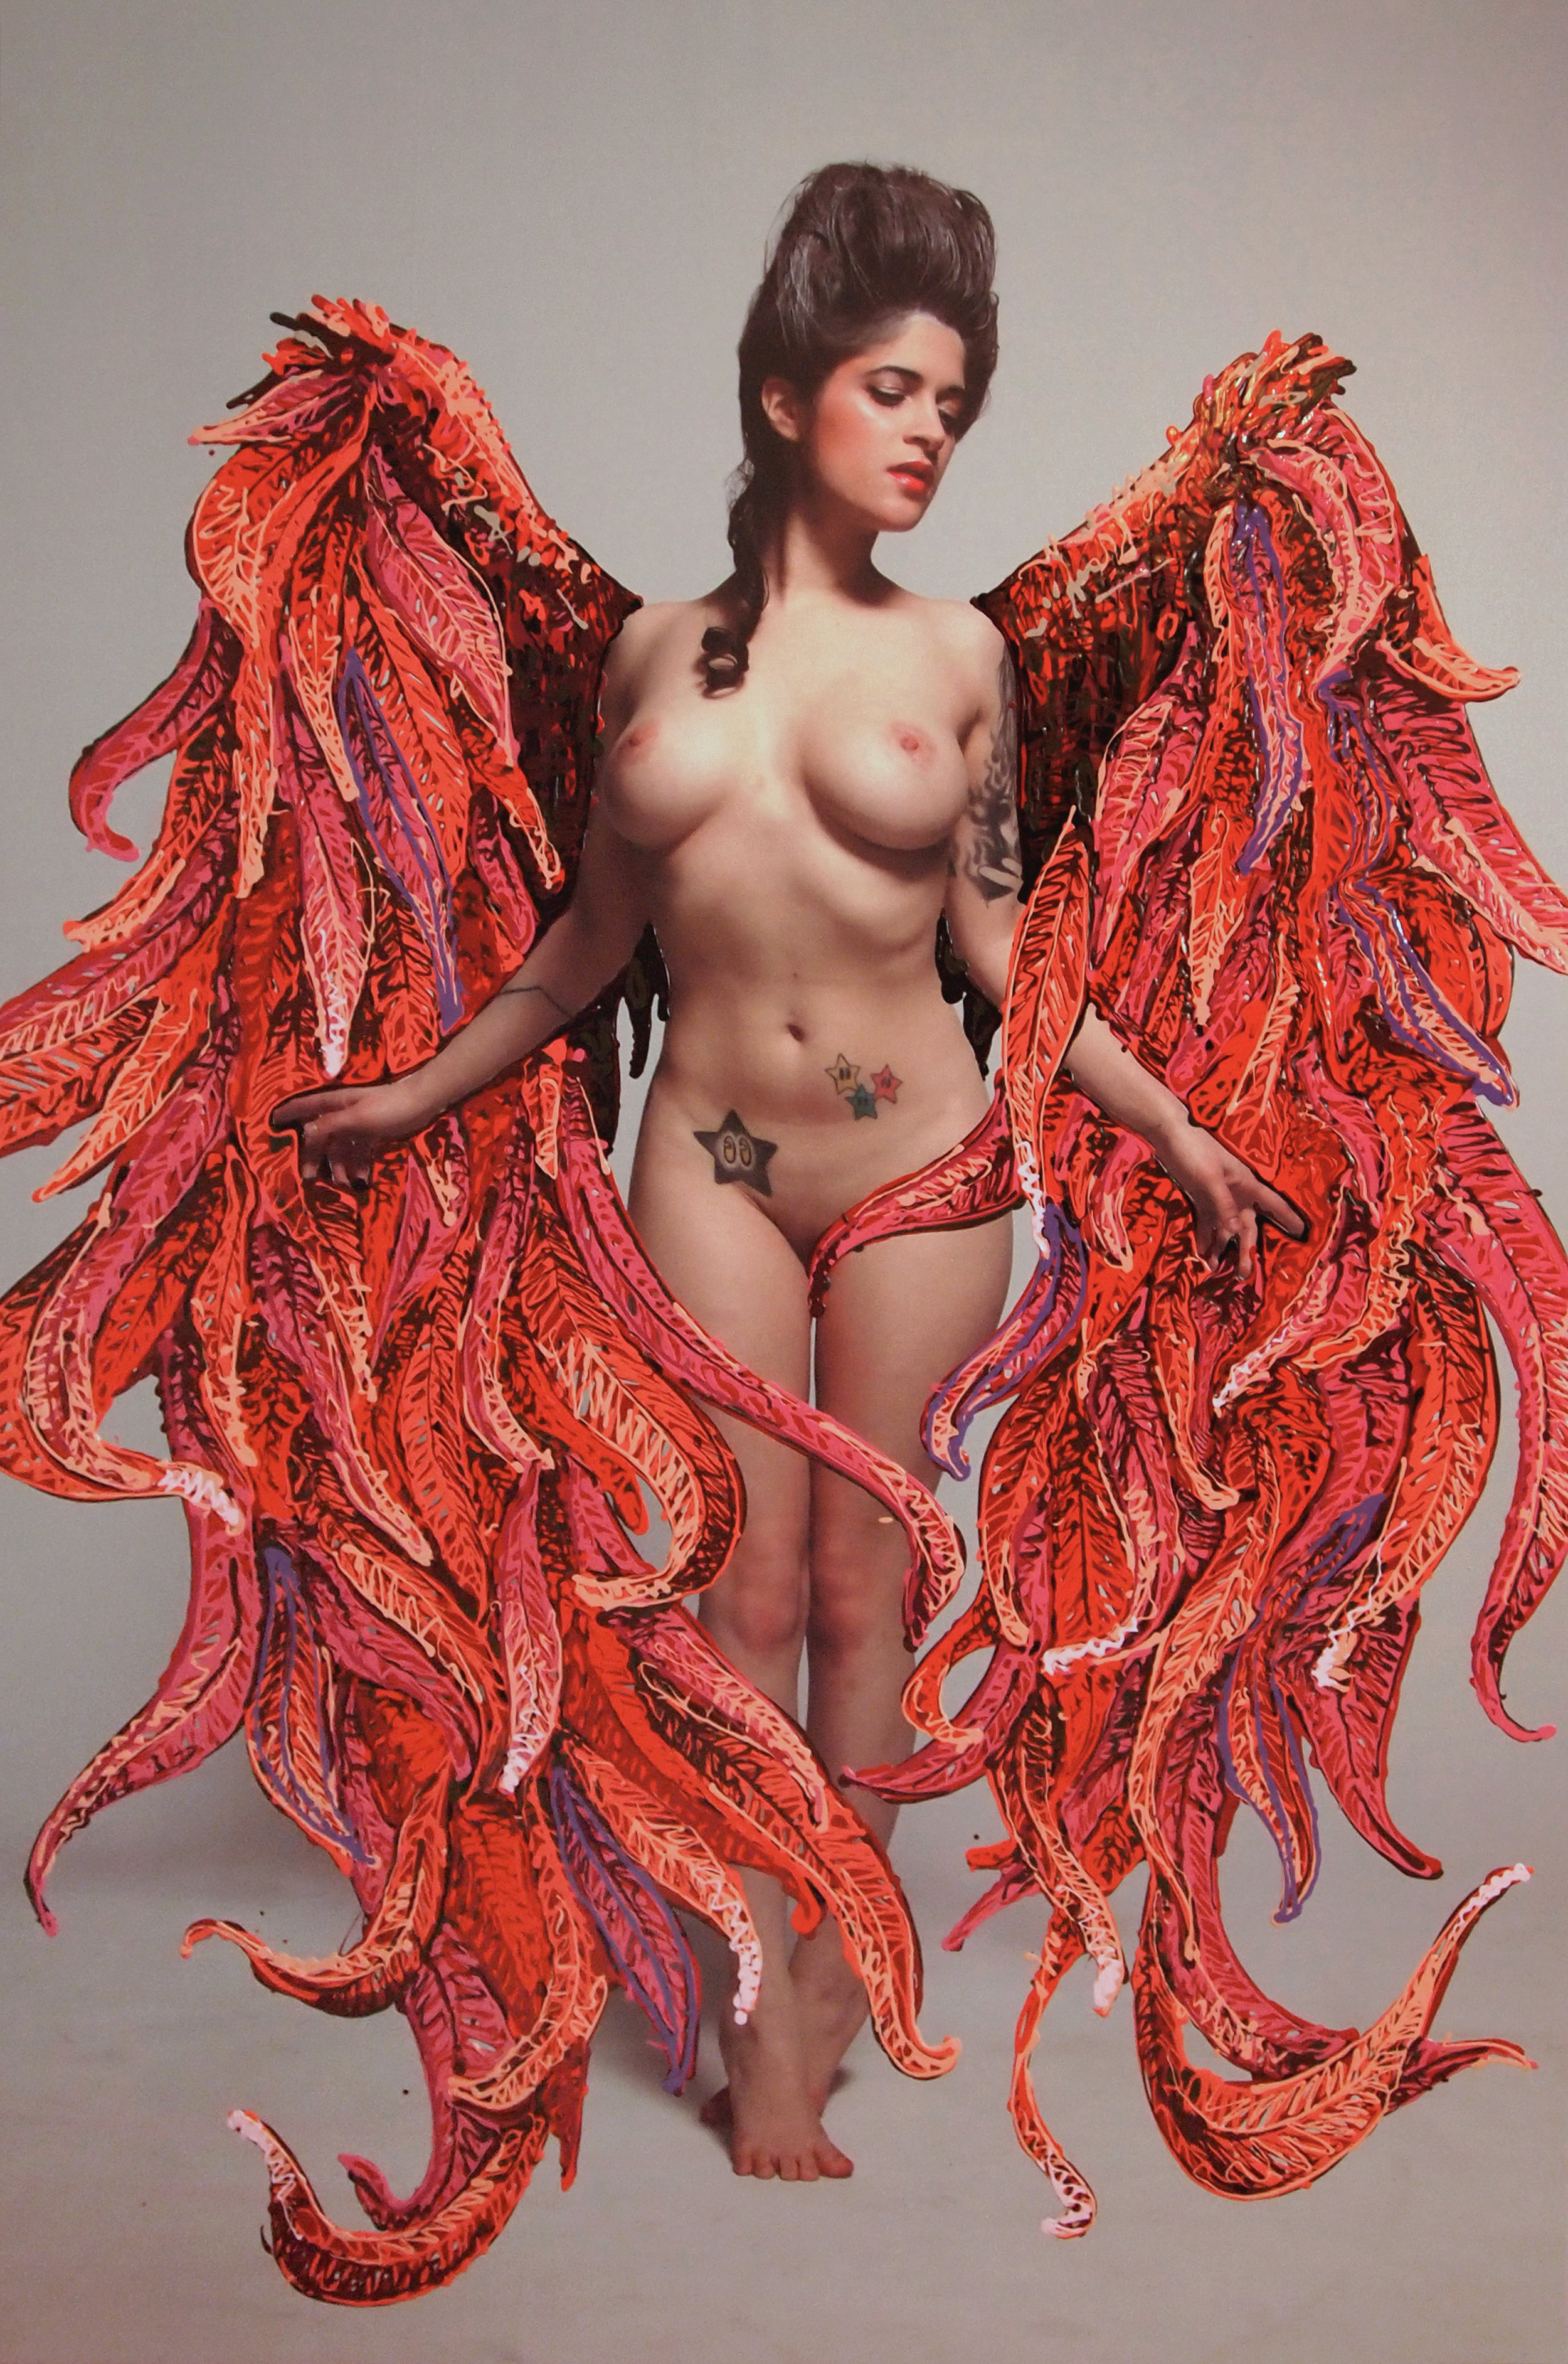 2013 red bull gives you wings acrylic and photo on canvas 48x72.jpg